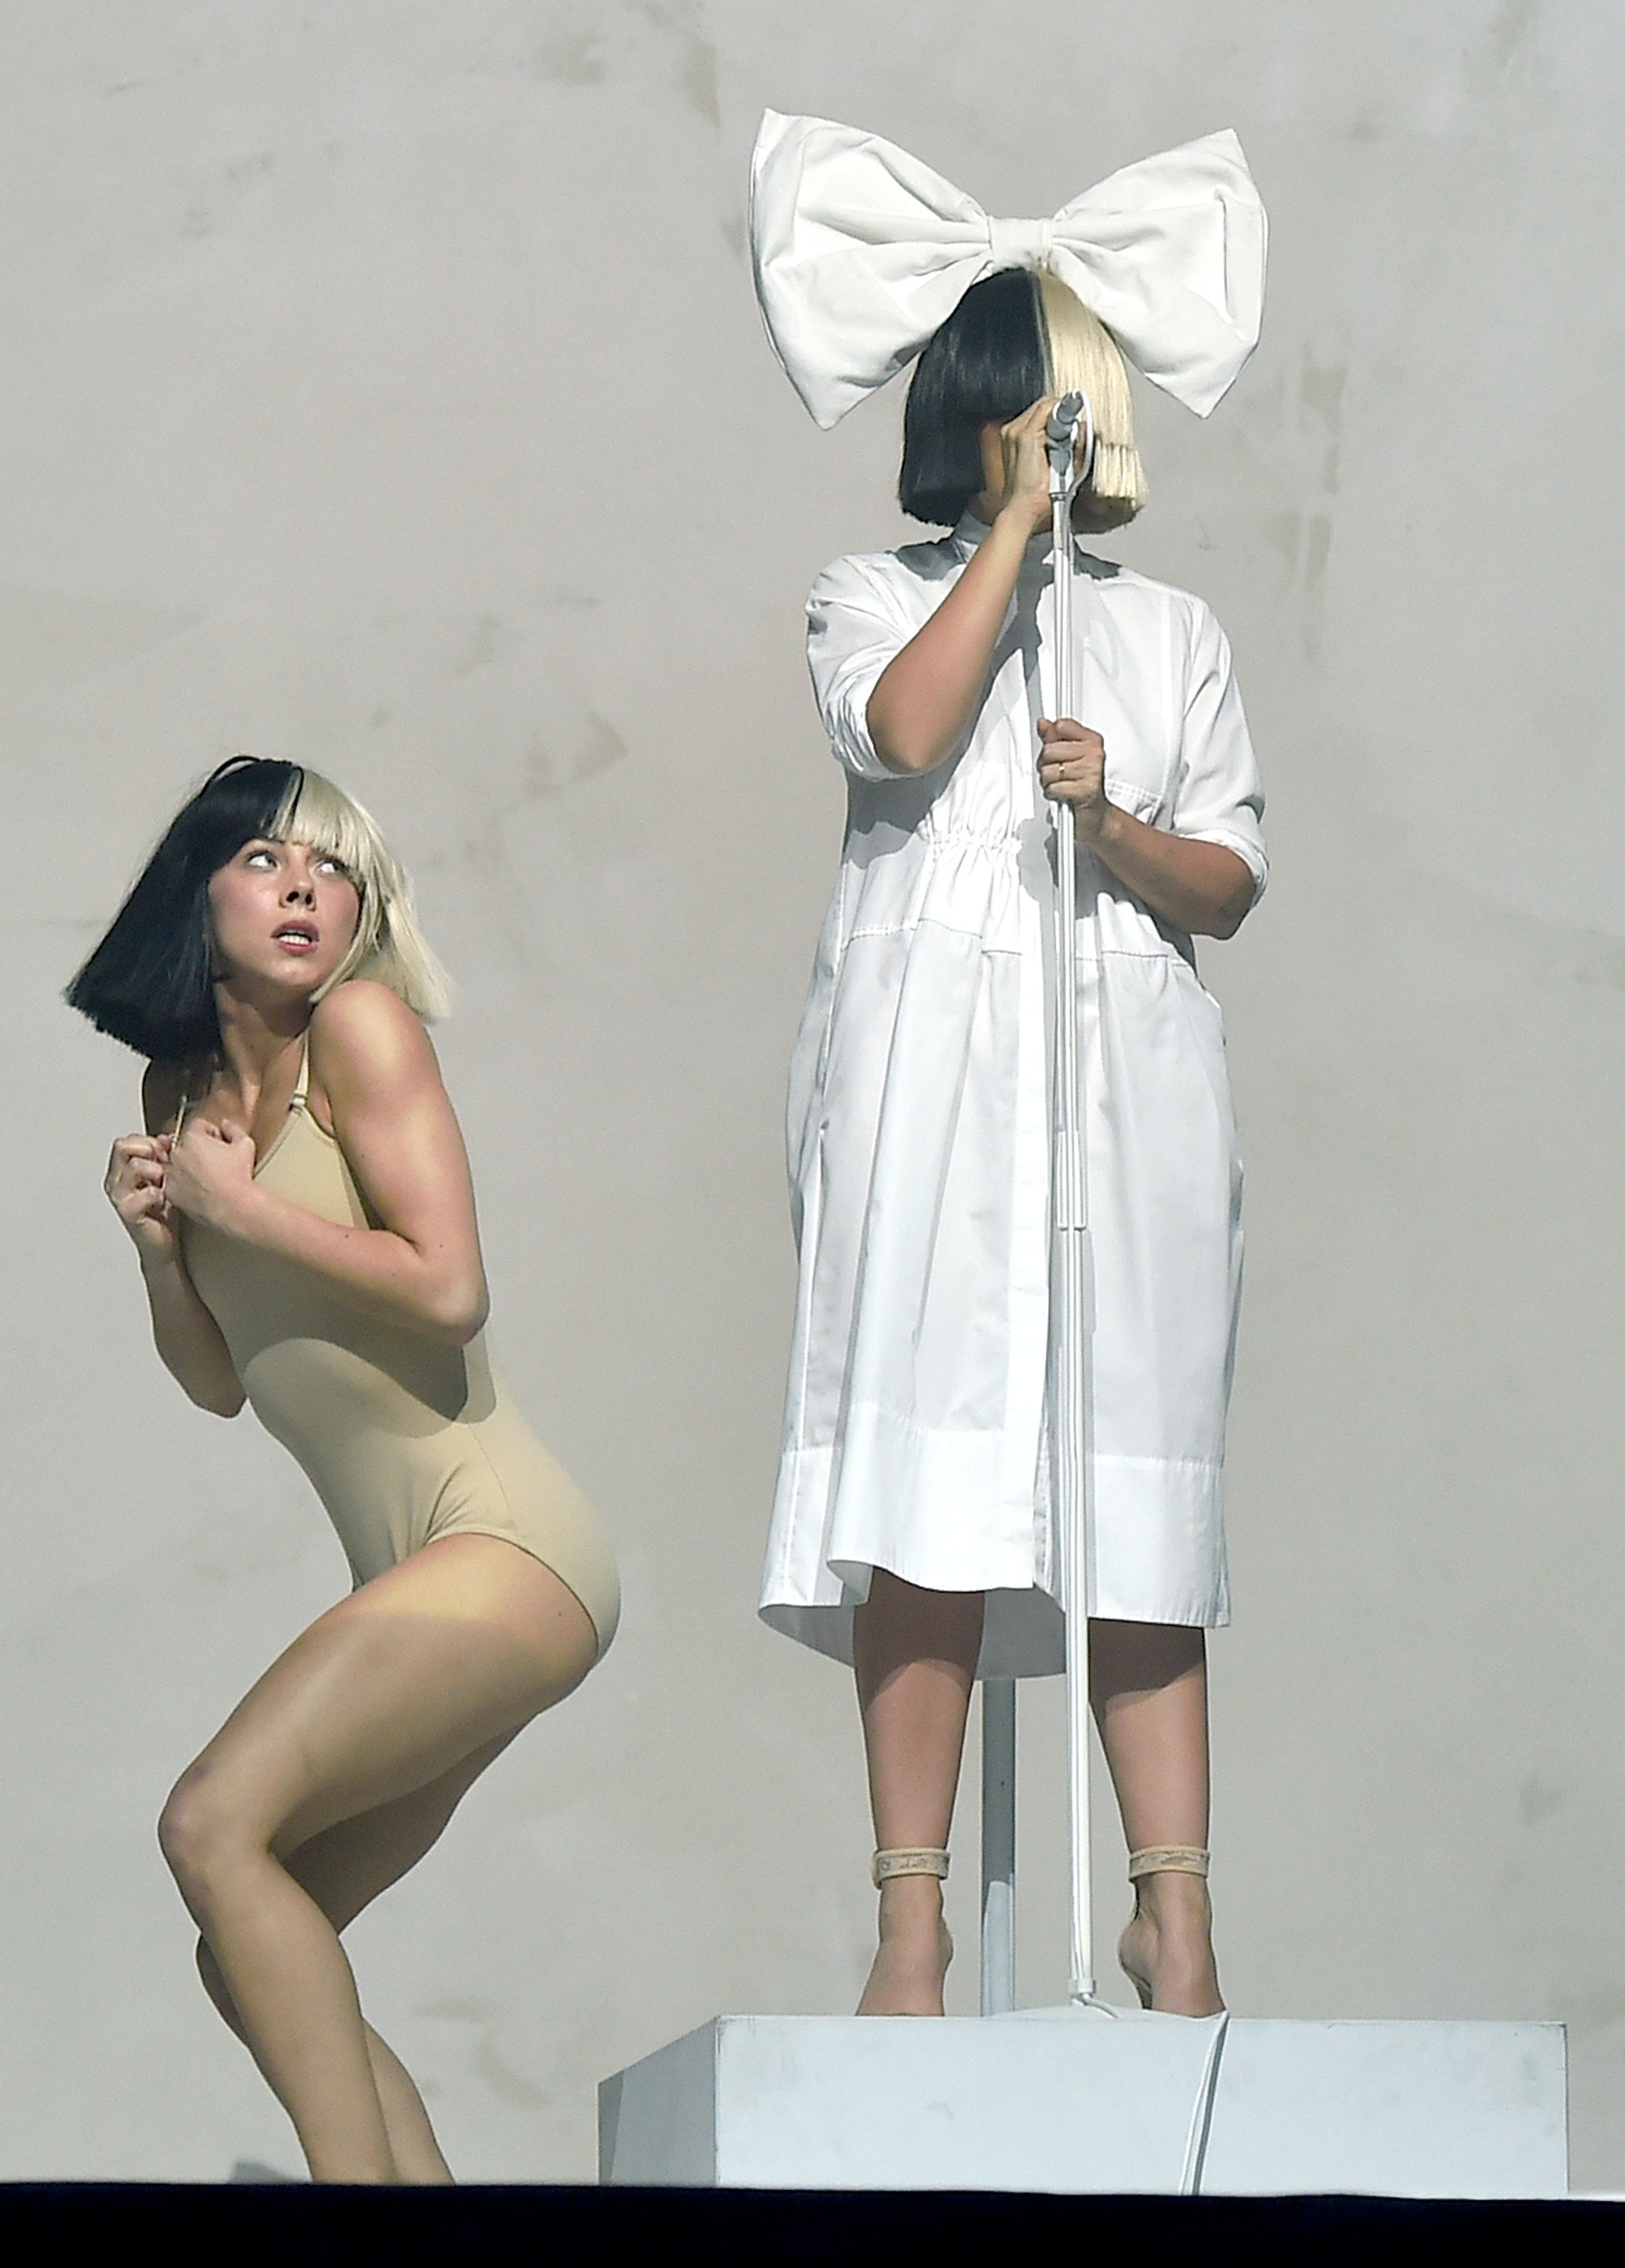 Will Maddie Ziegler Go On Tour With Sia  Her Schedule Makes It A Possibility. Will Maddie Ziegler Go On Tour With Sia  Her Schedule Makes It A